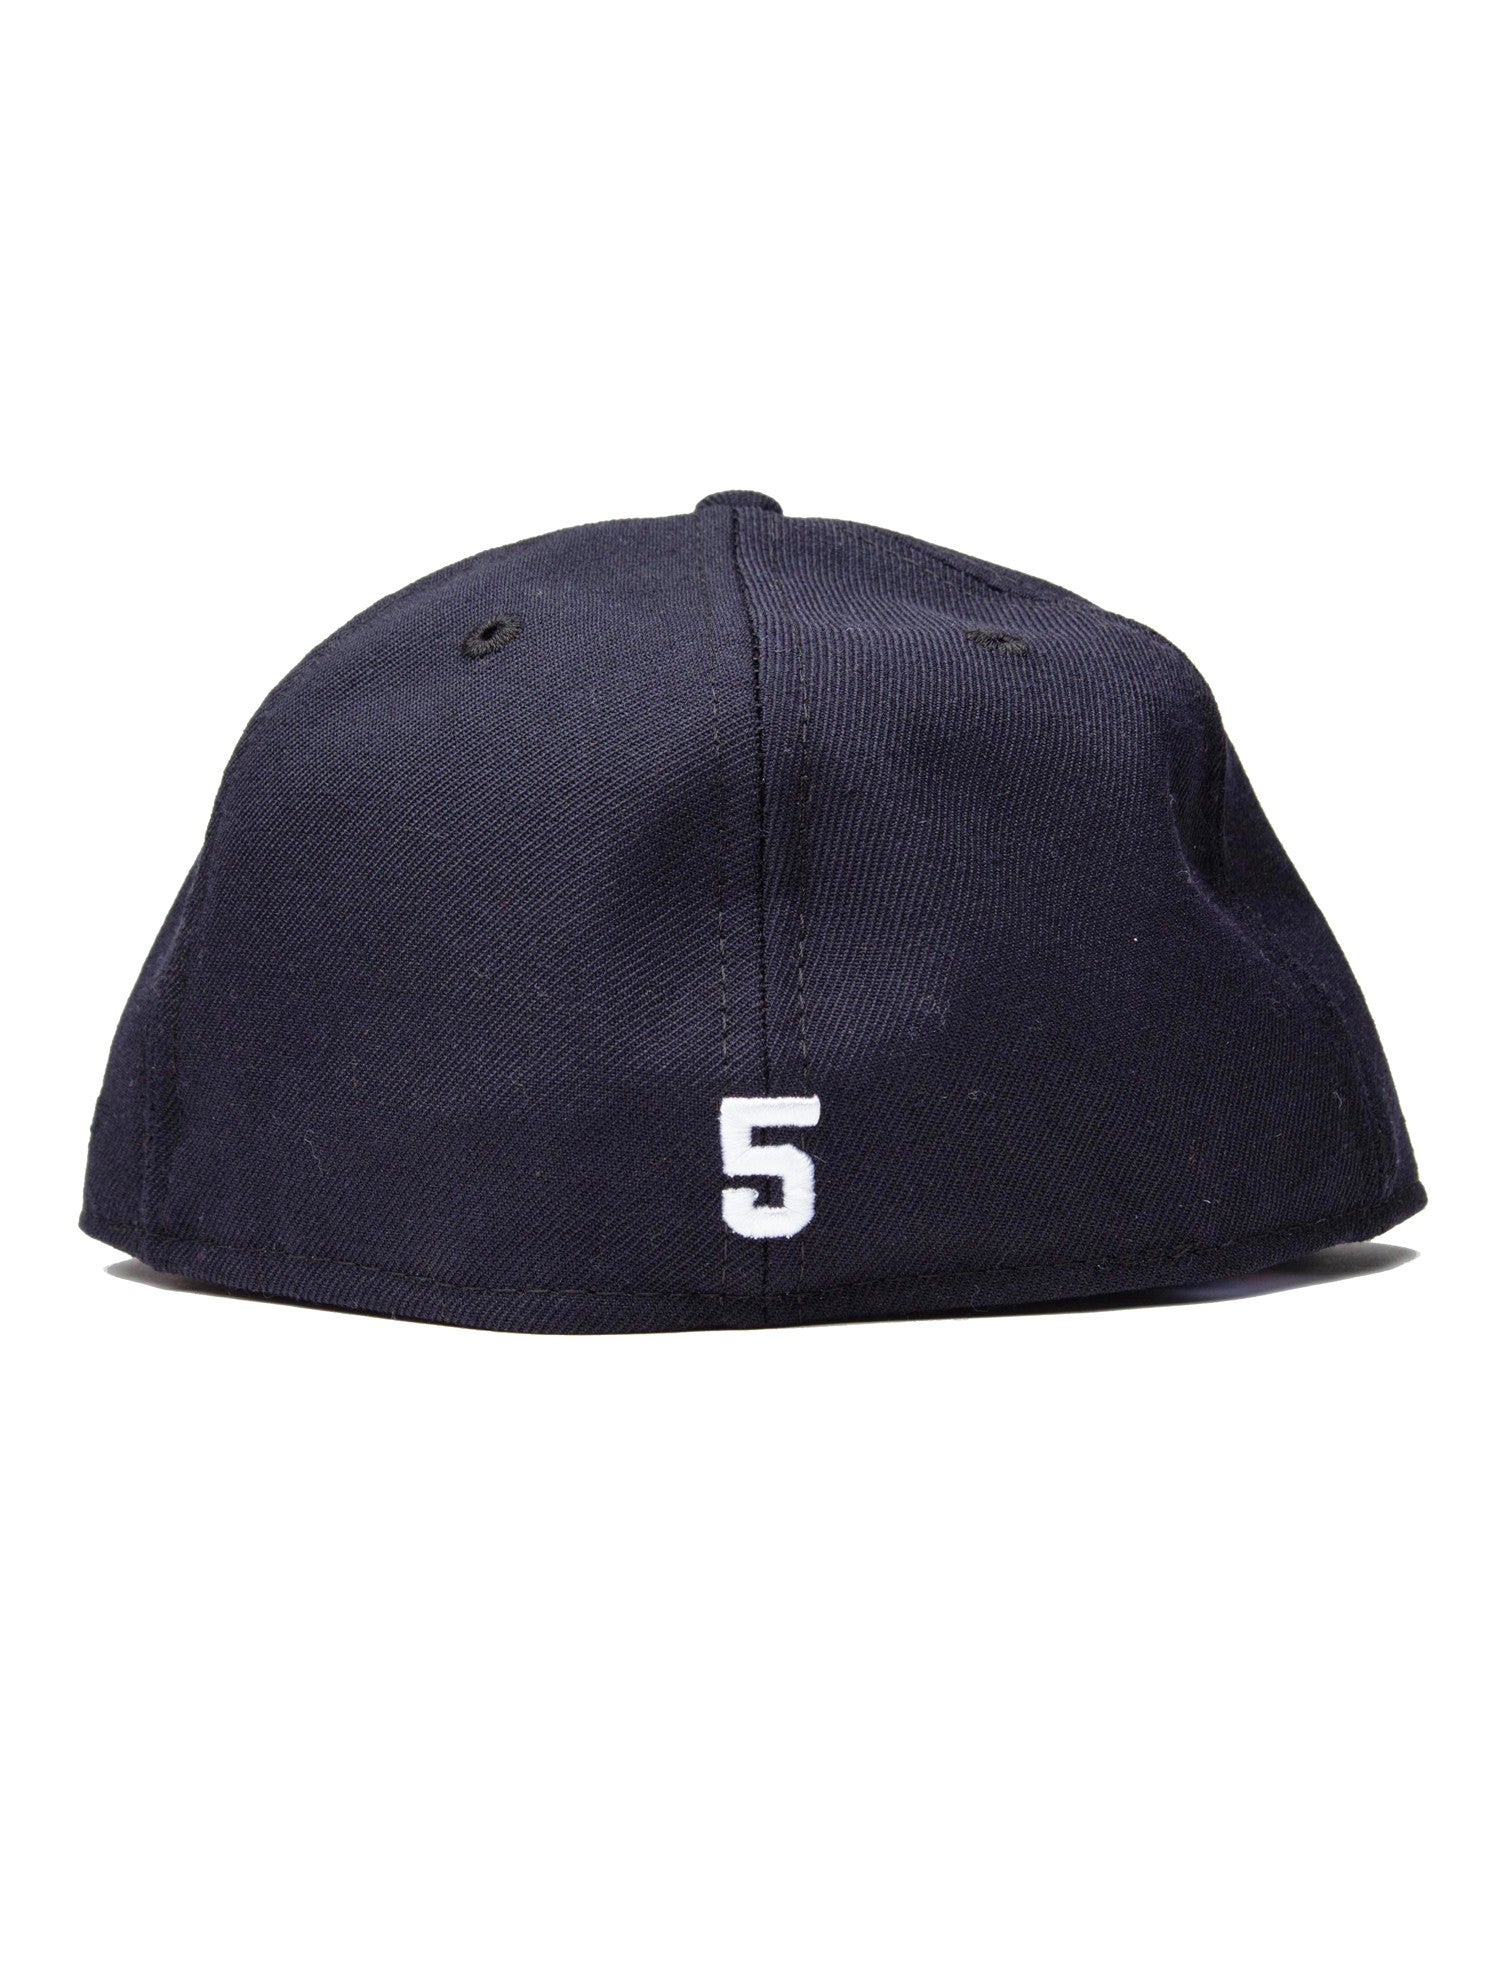 Navy New Era Fitted Cap (59FIFTY) 7